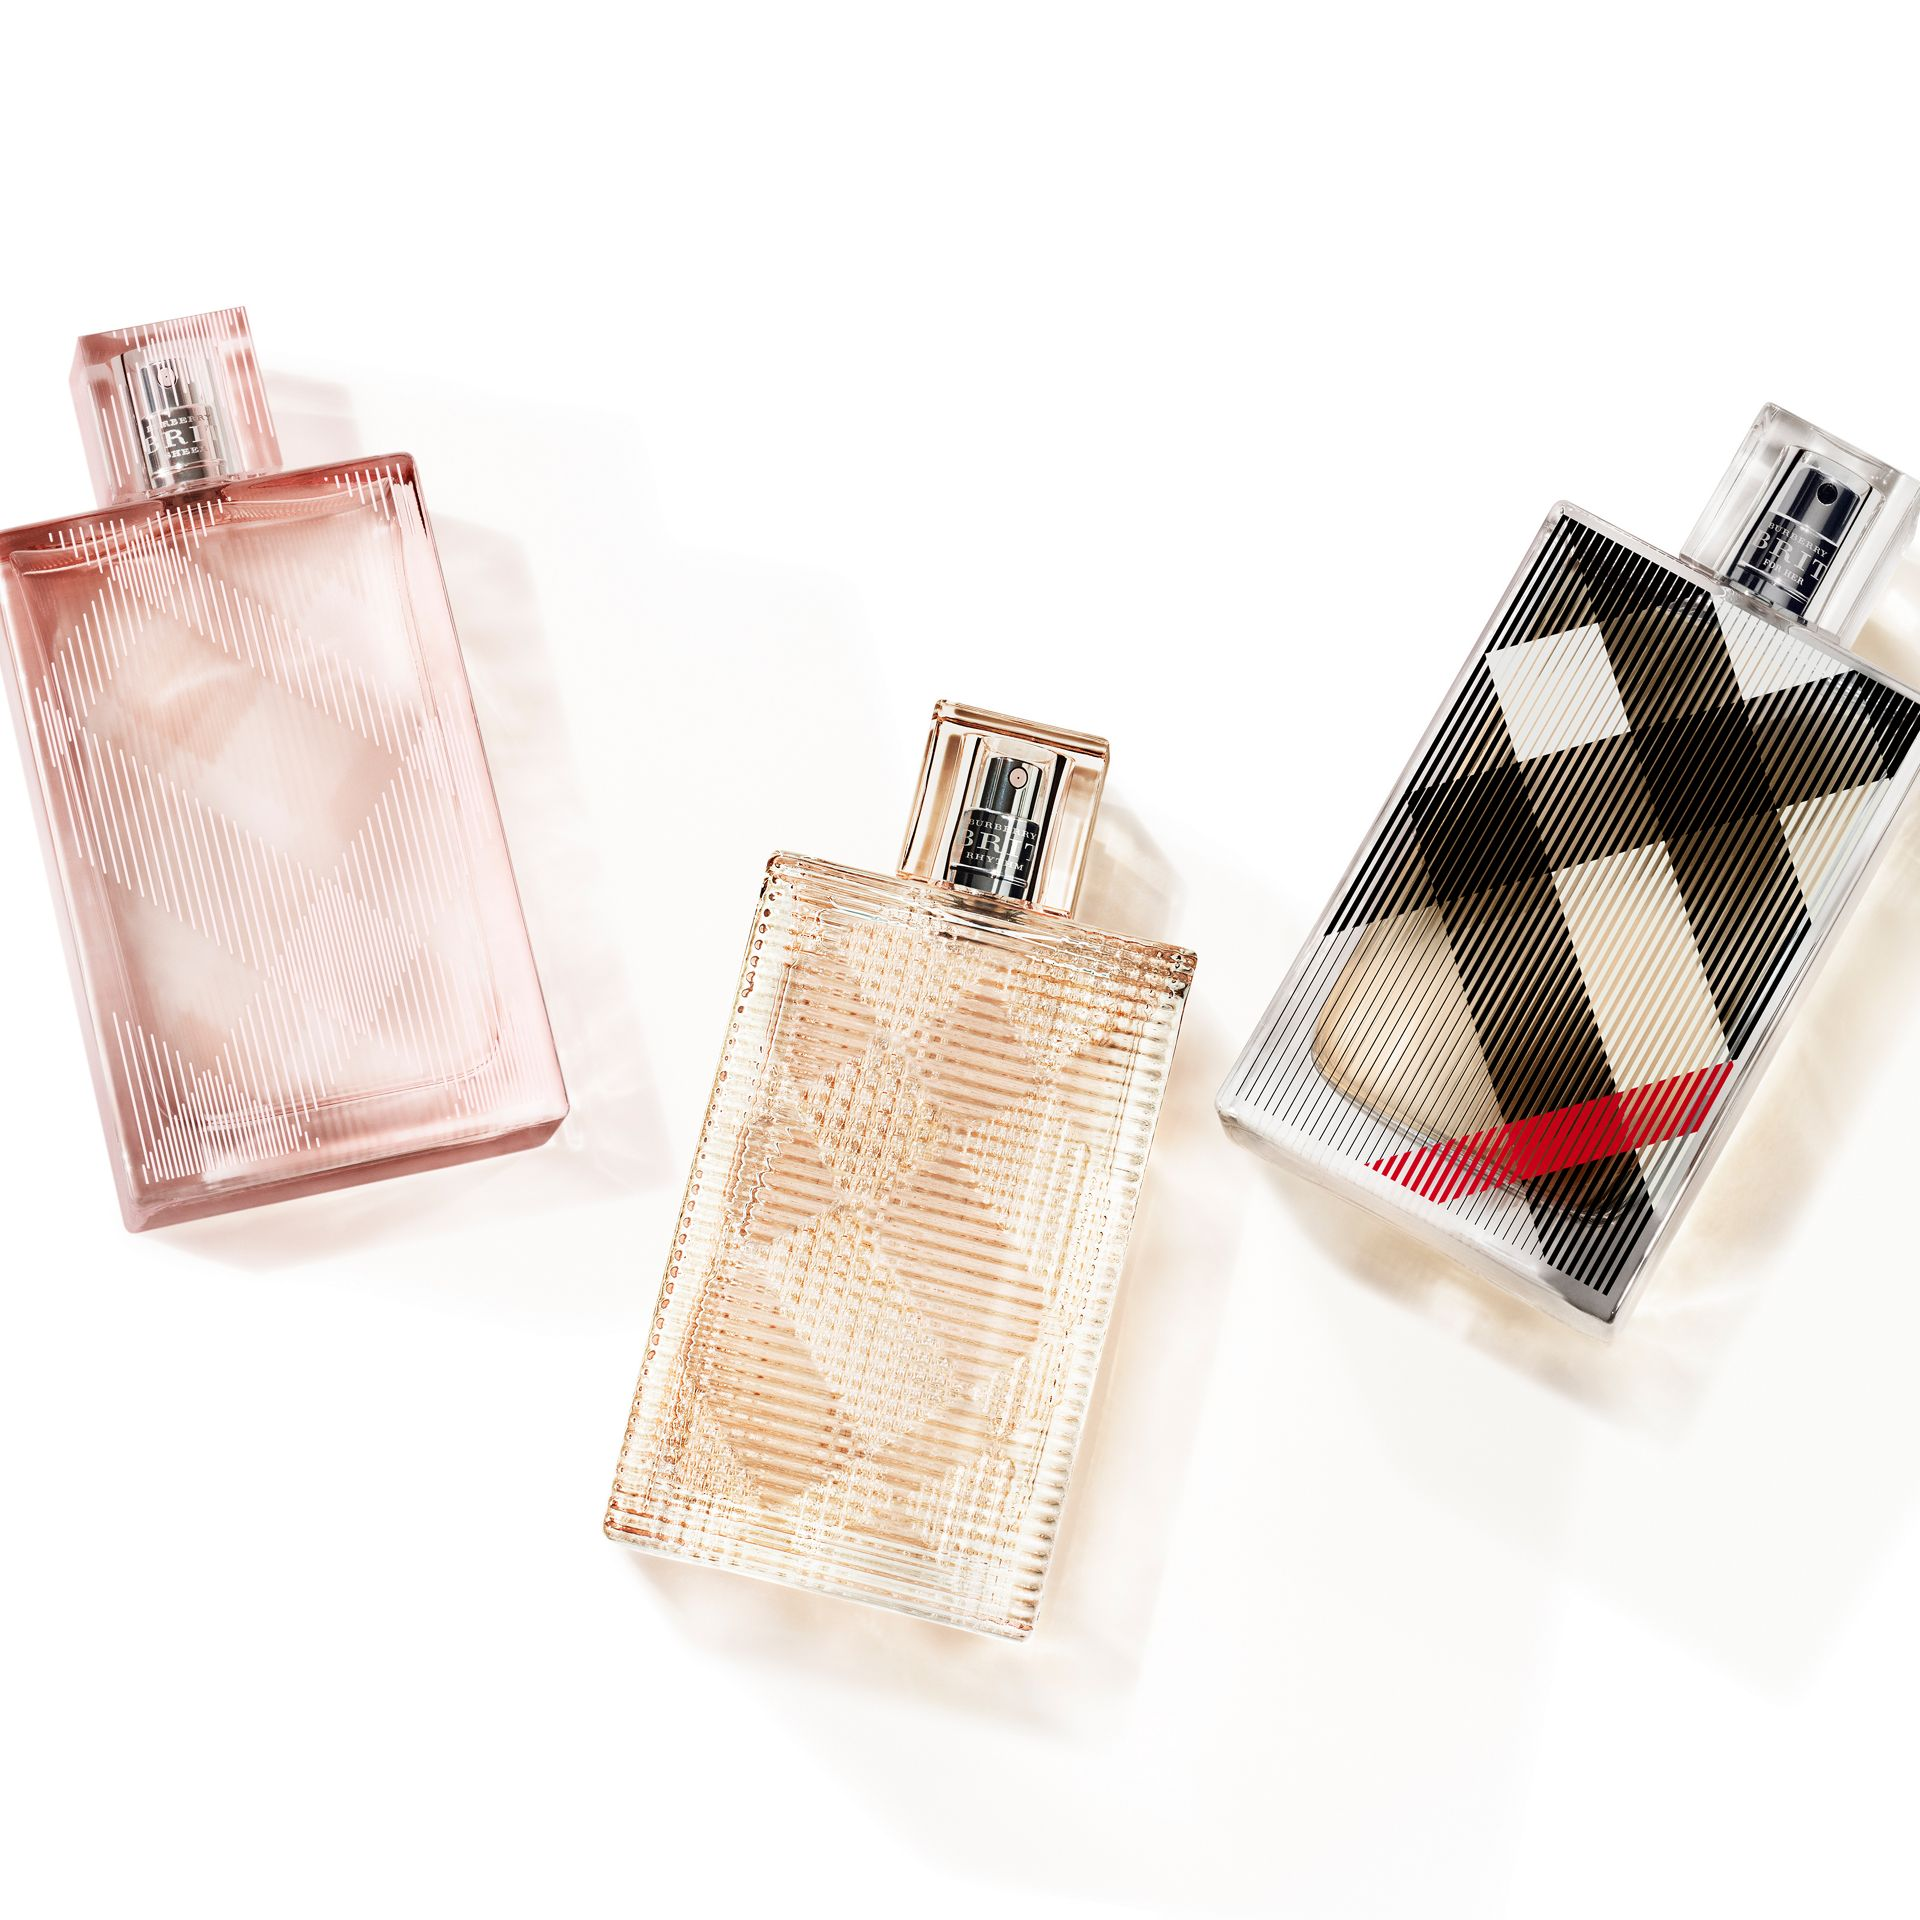 Burberry Brit Sheer Eau de Toilette Set - gallery image 3